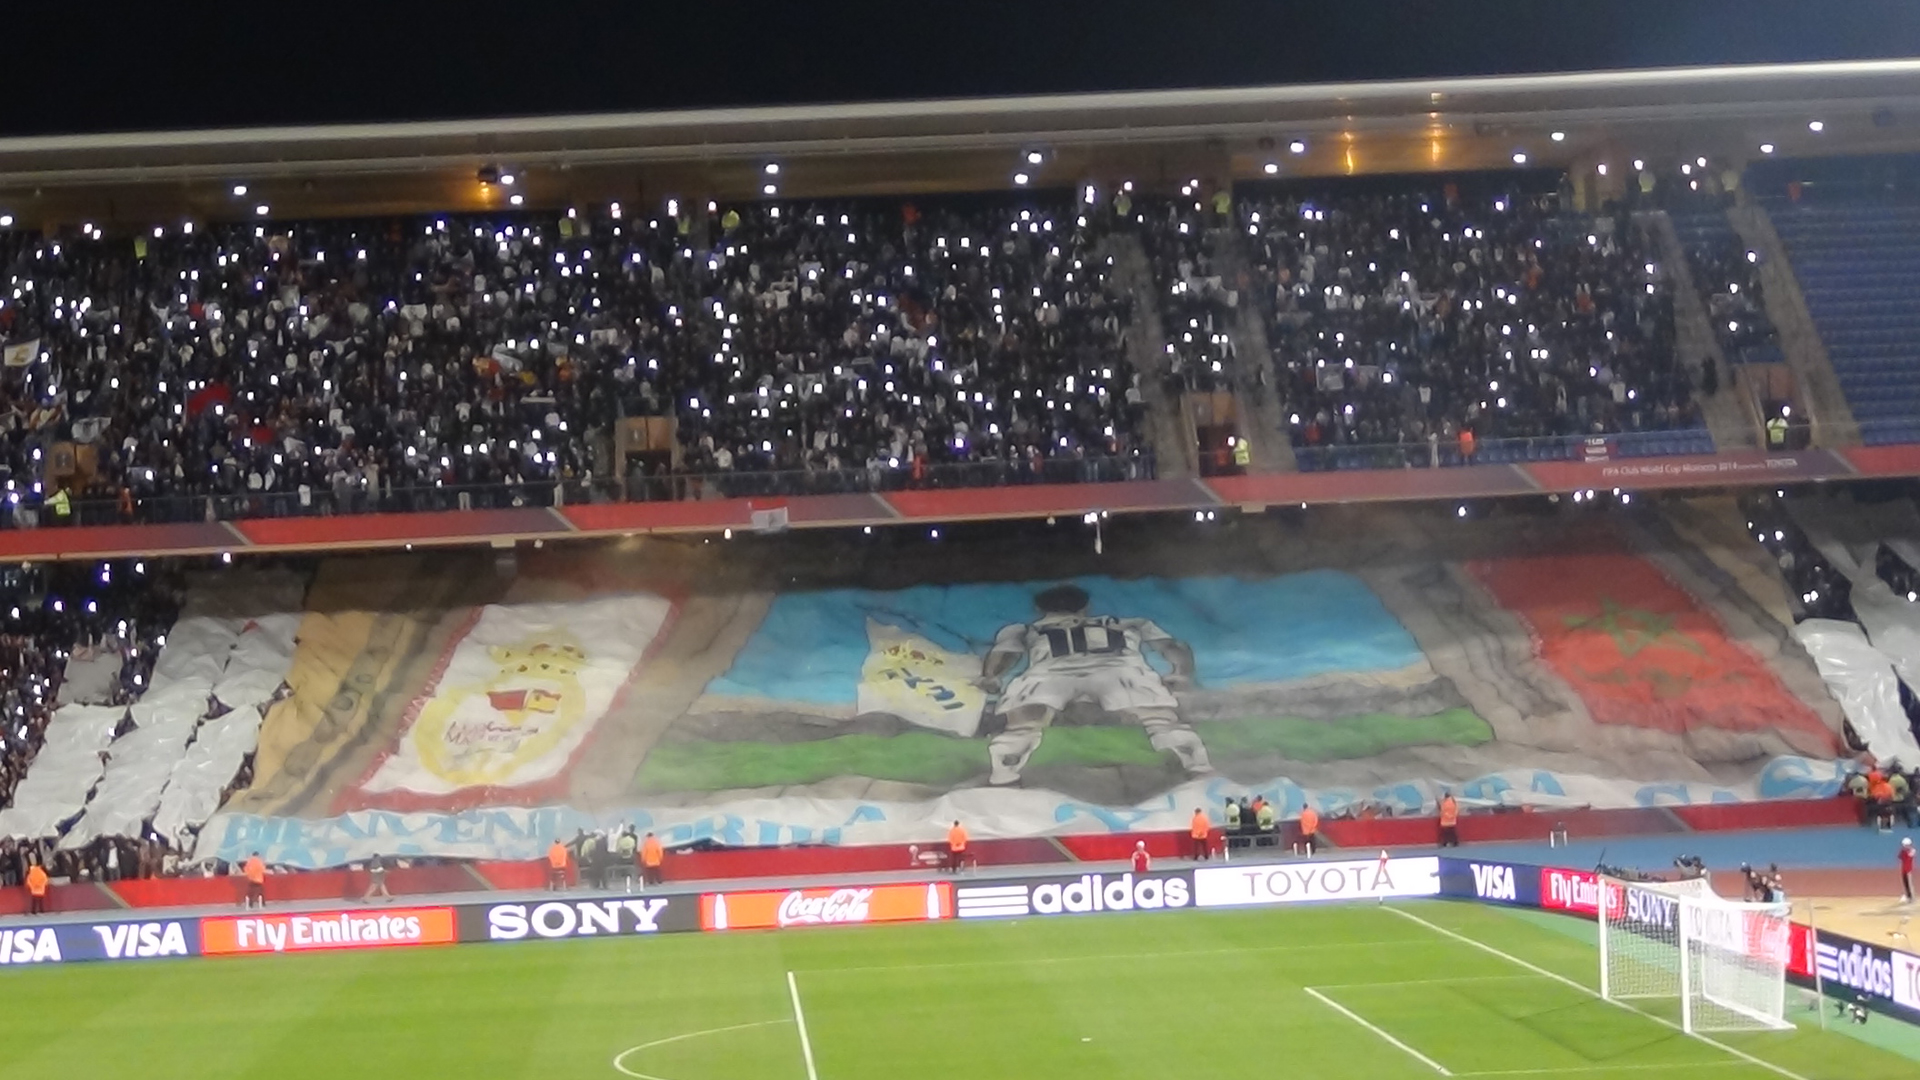 Real Madrid fans in Morocco Club World Cup 2014